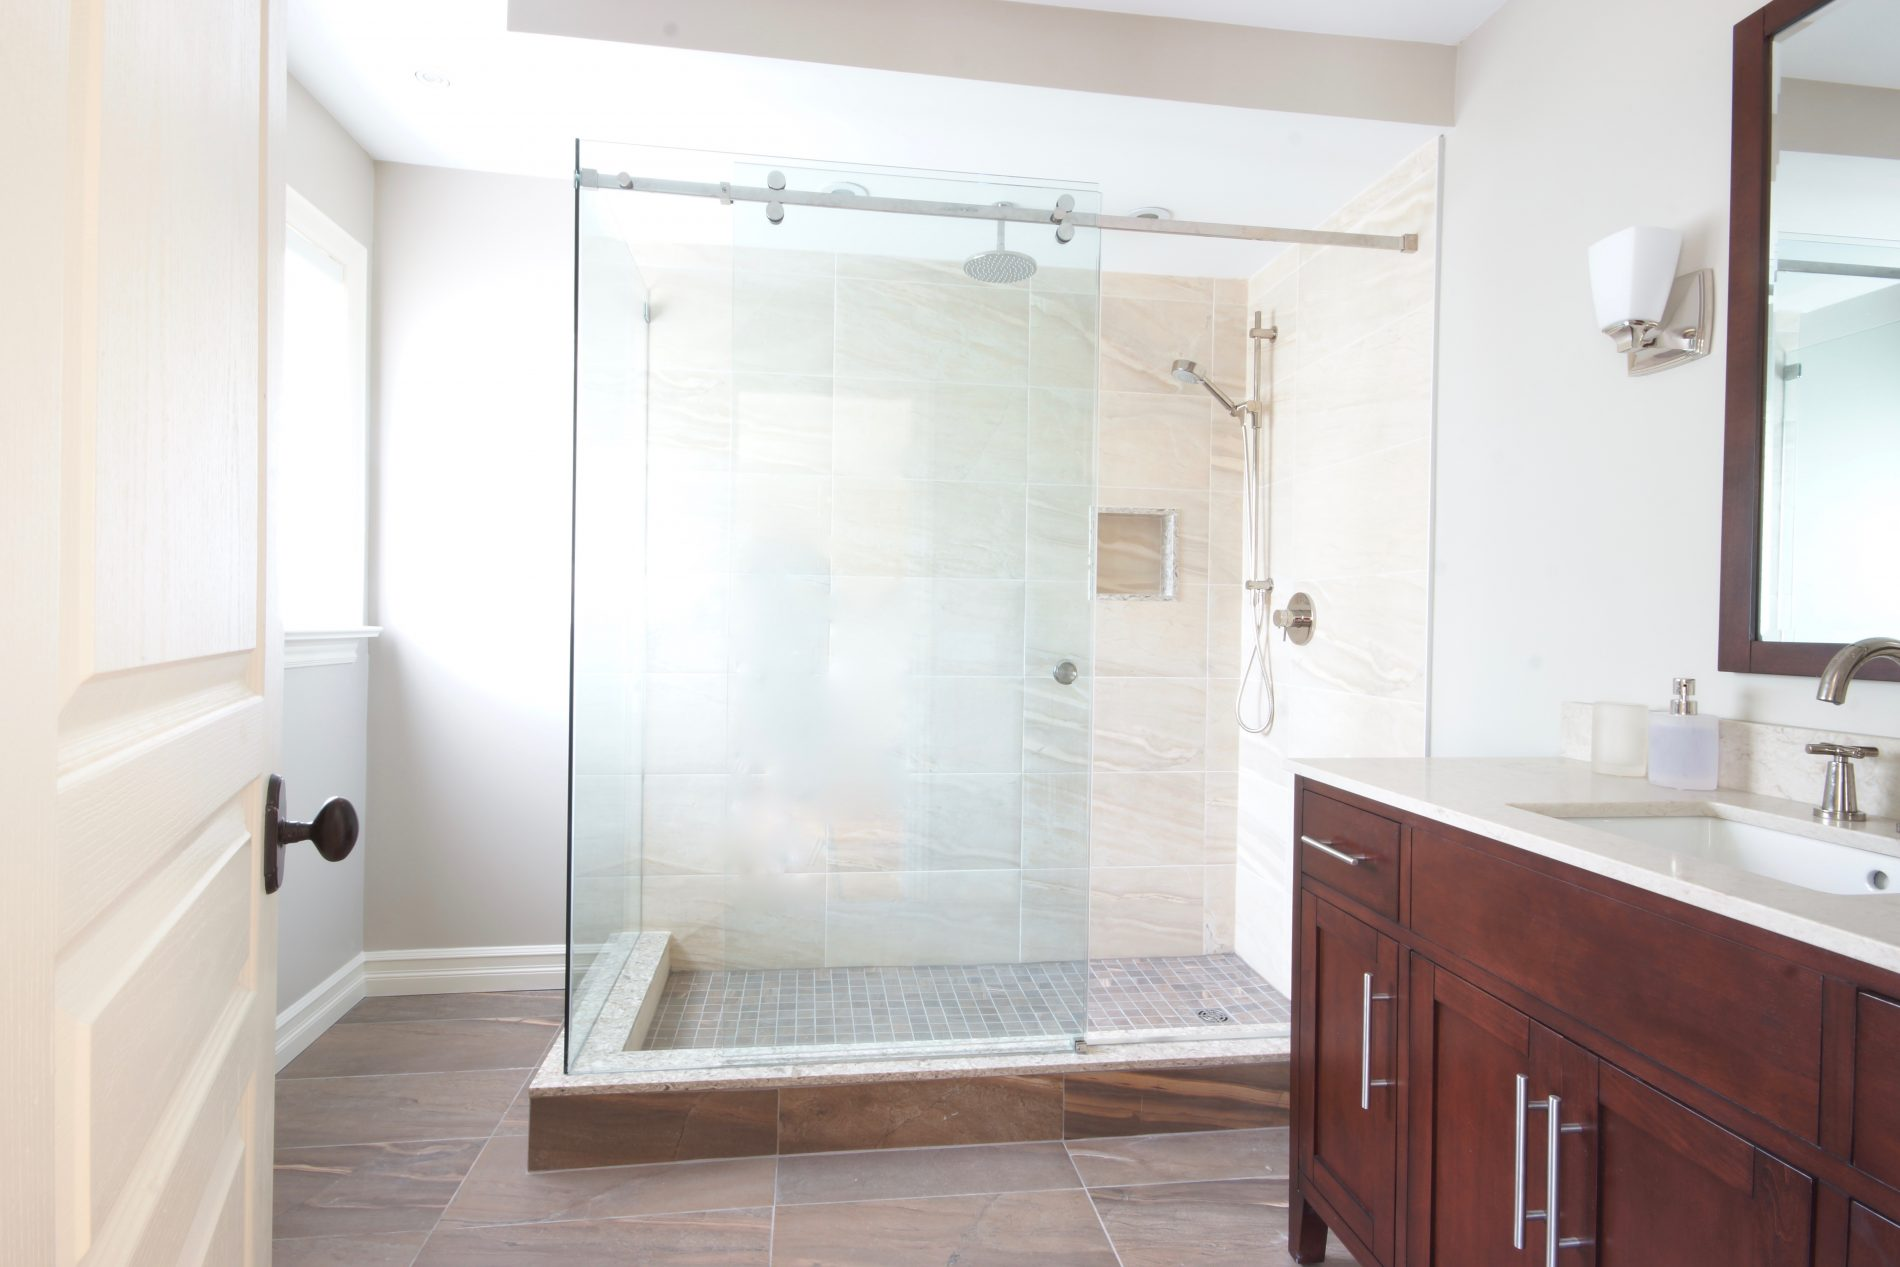 Laird Ave. – Leaside Toronto Contemporary Bathroom - Featured Image